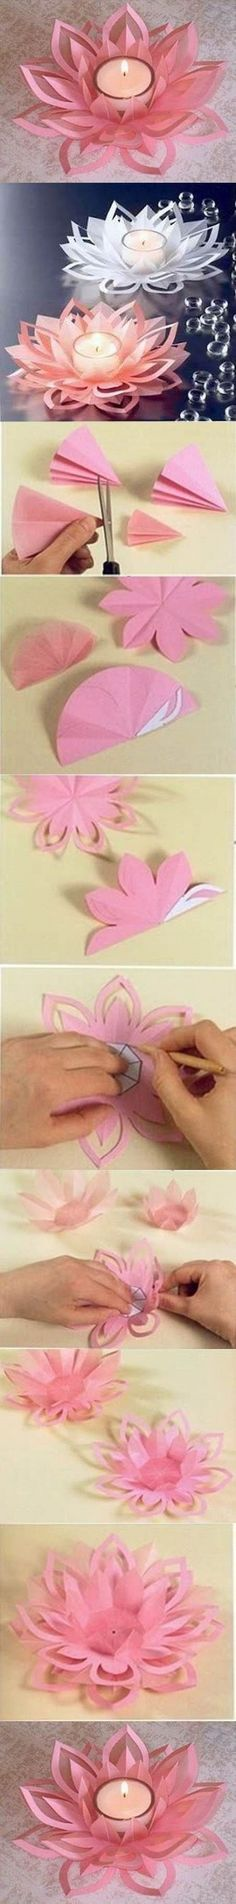 DIY Paper Lotus Candle Holders.